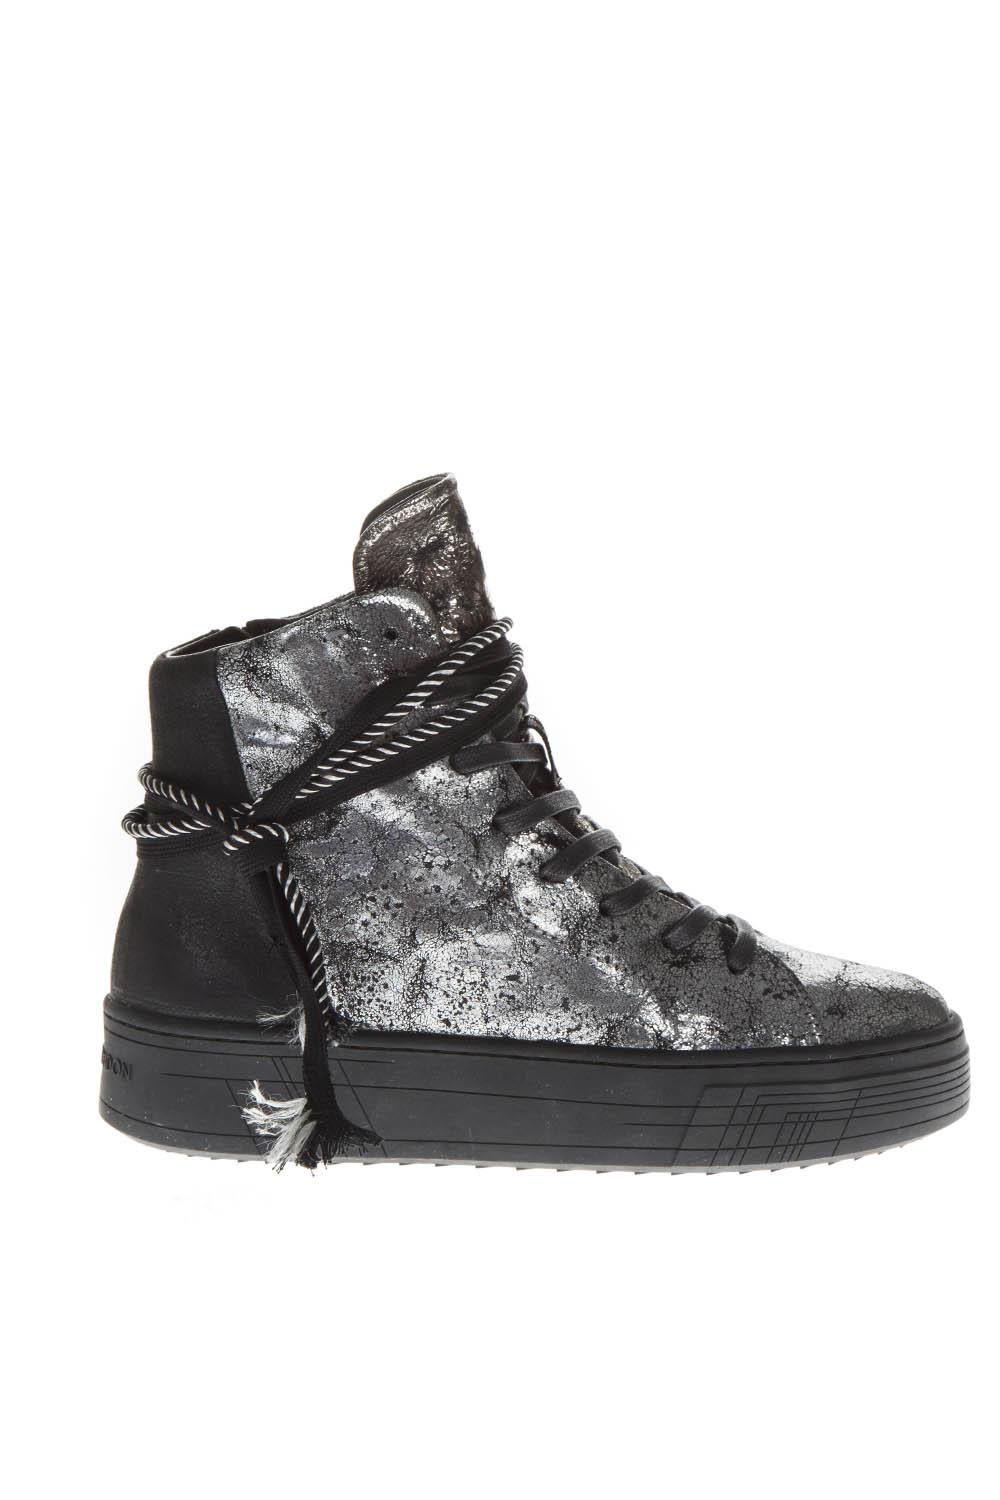 893b19bddd1d2 SILVER LEATHER HIGH-TOP SNEAKERS FW 2018 - CRIME LONDON - Boutique Galiano